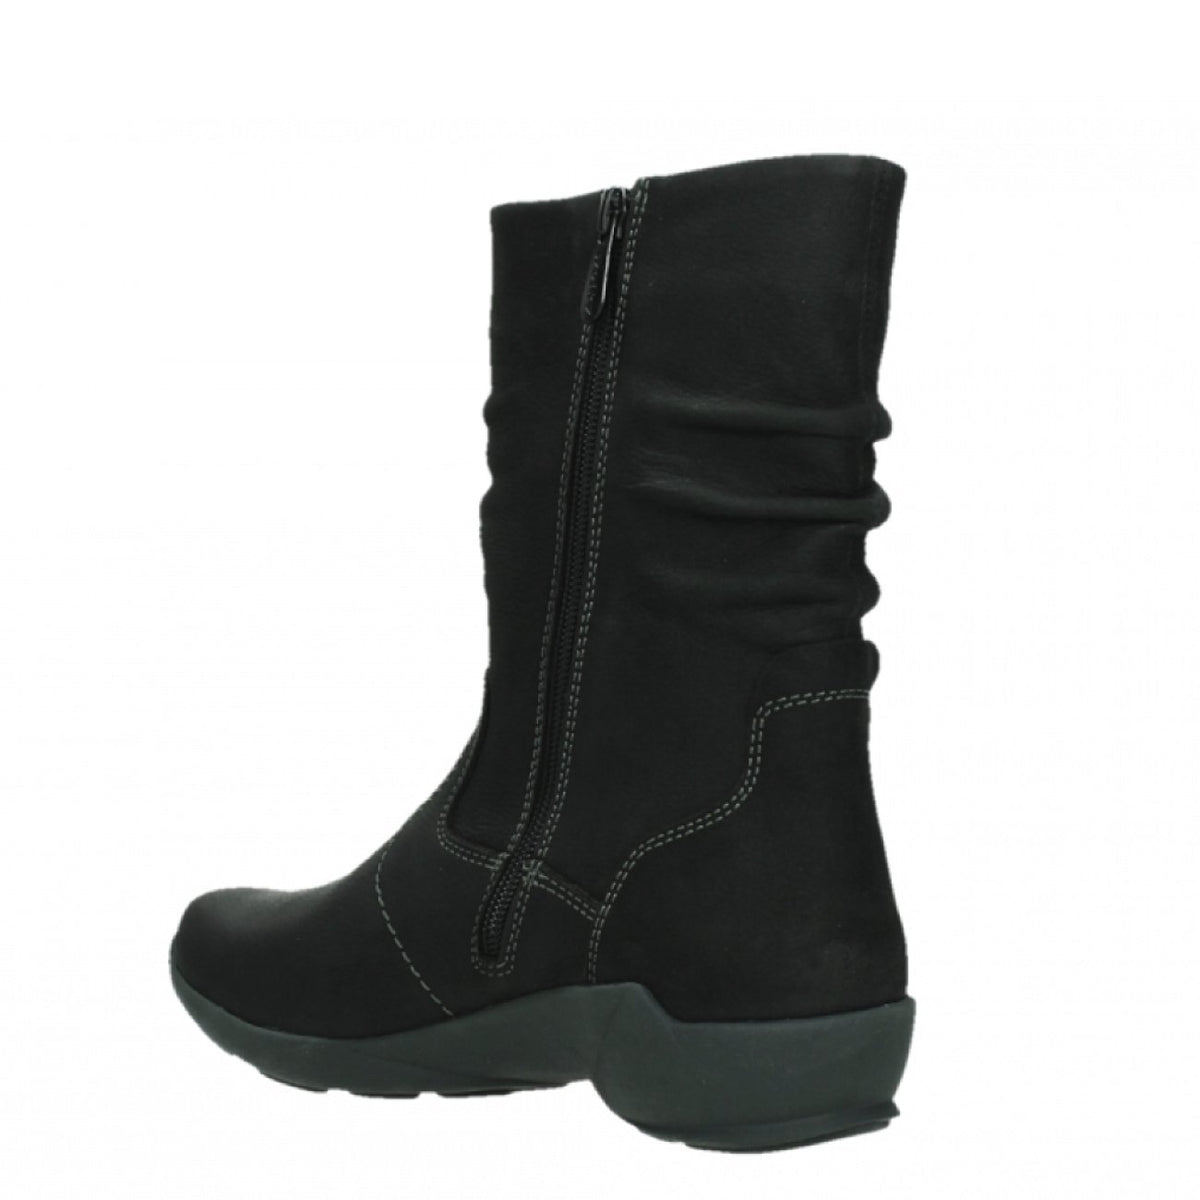 Wolky, Luna WP, Boot, Antique Nubuck, Ladies, Black Boots Wolky